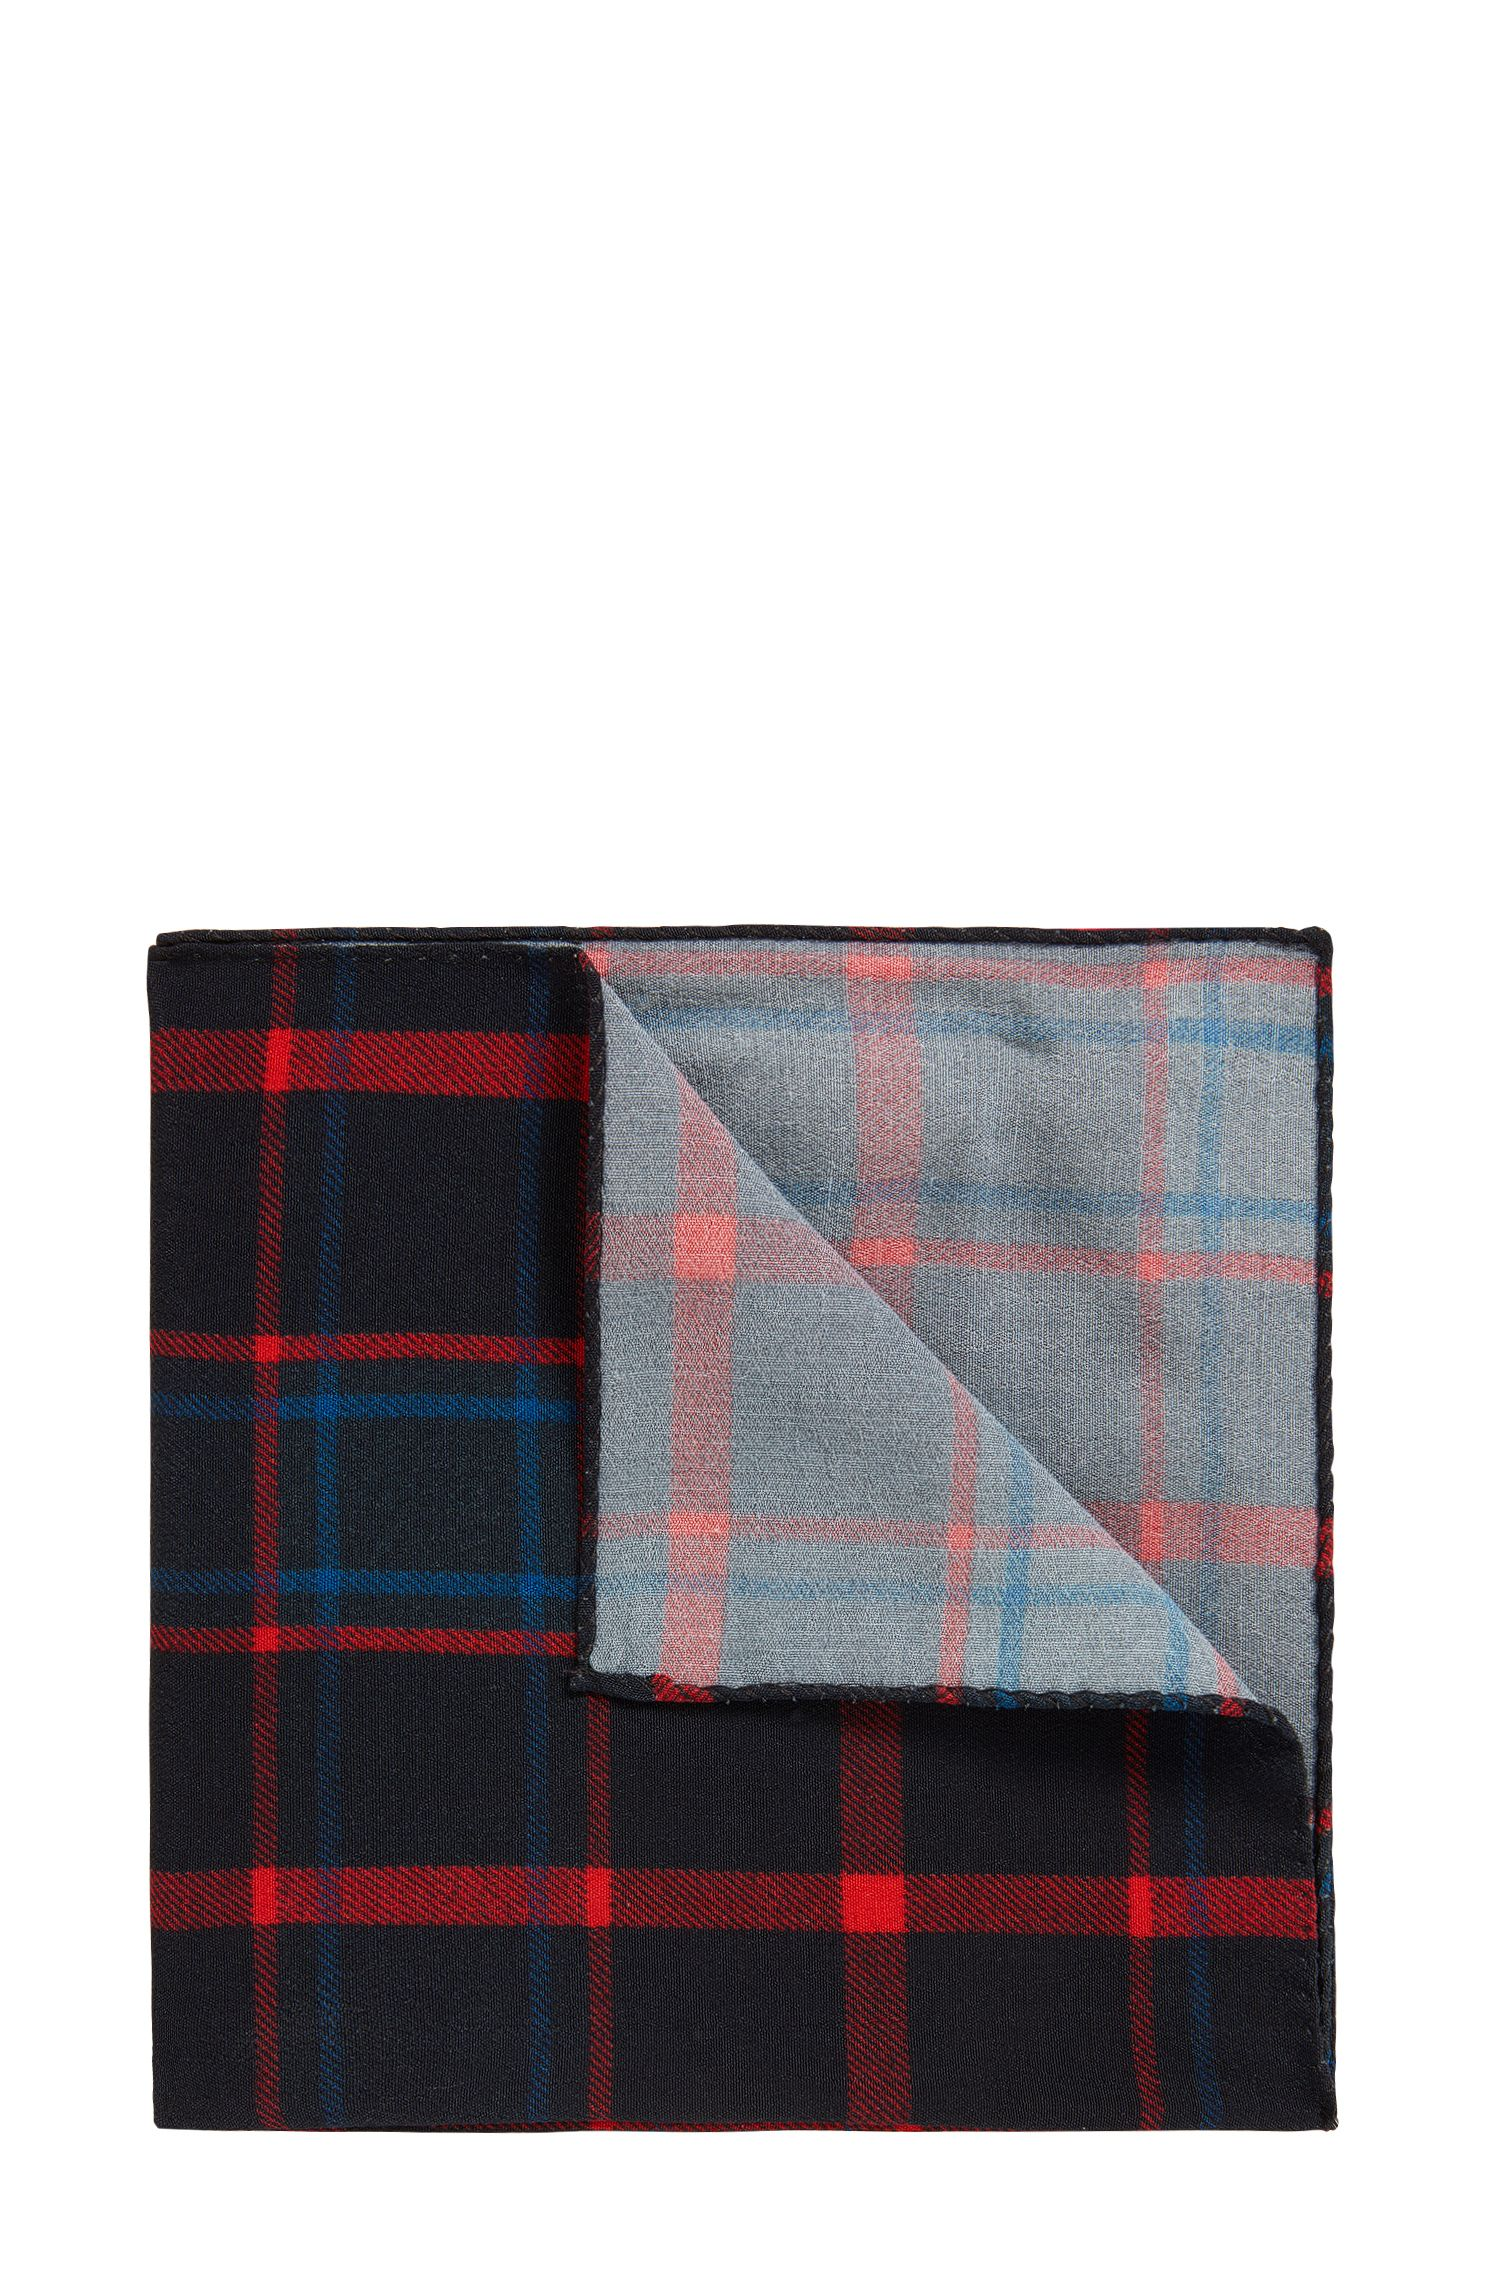 Pocket square in checked fabric